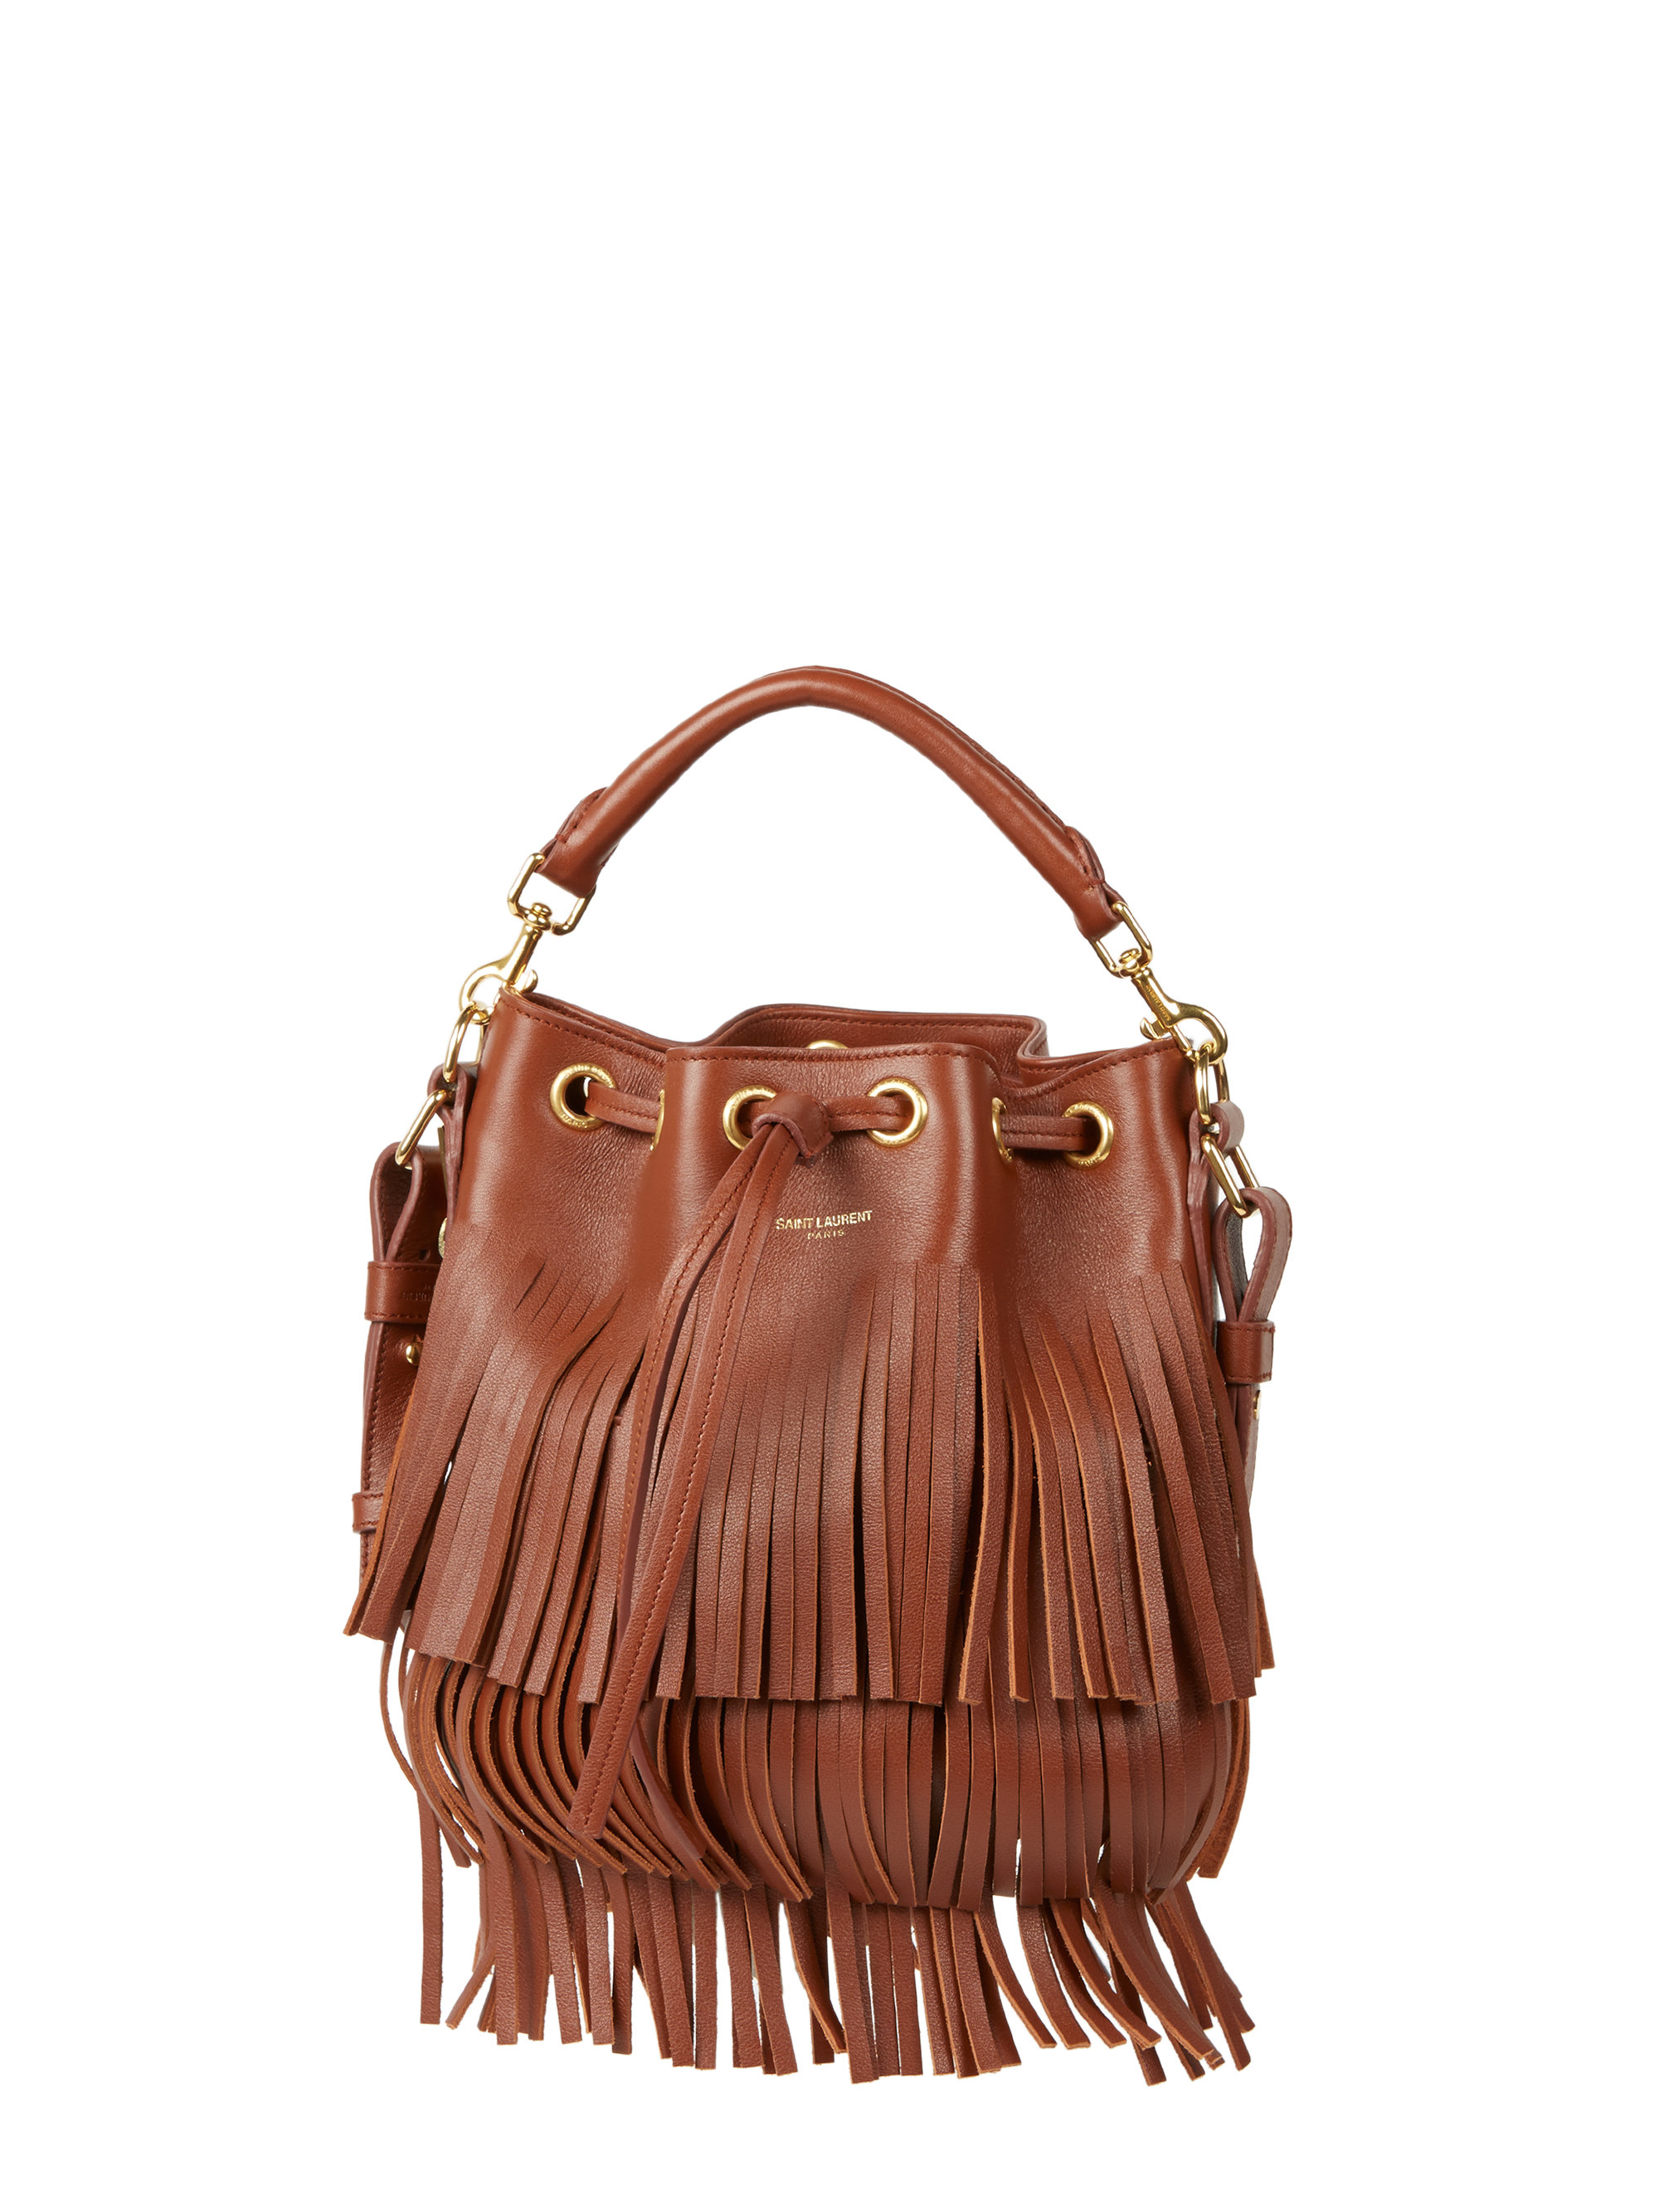 a13be3c0d2 Saint laurent Emmanuelle Small Fringed Bucket Bag in Brown